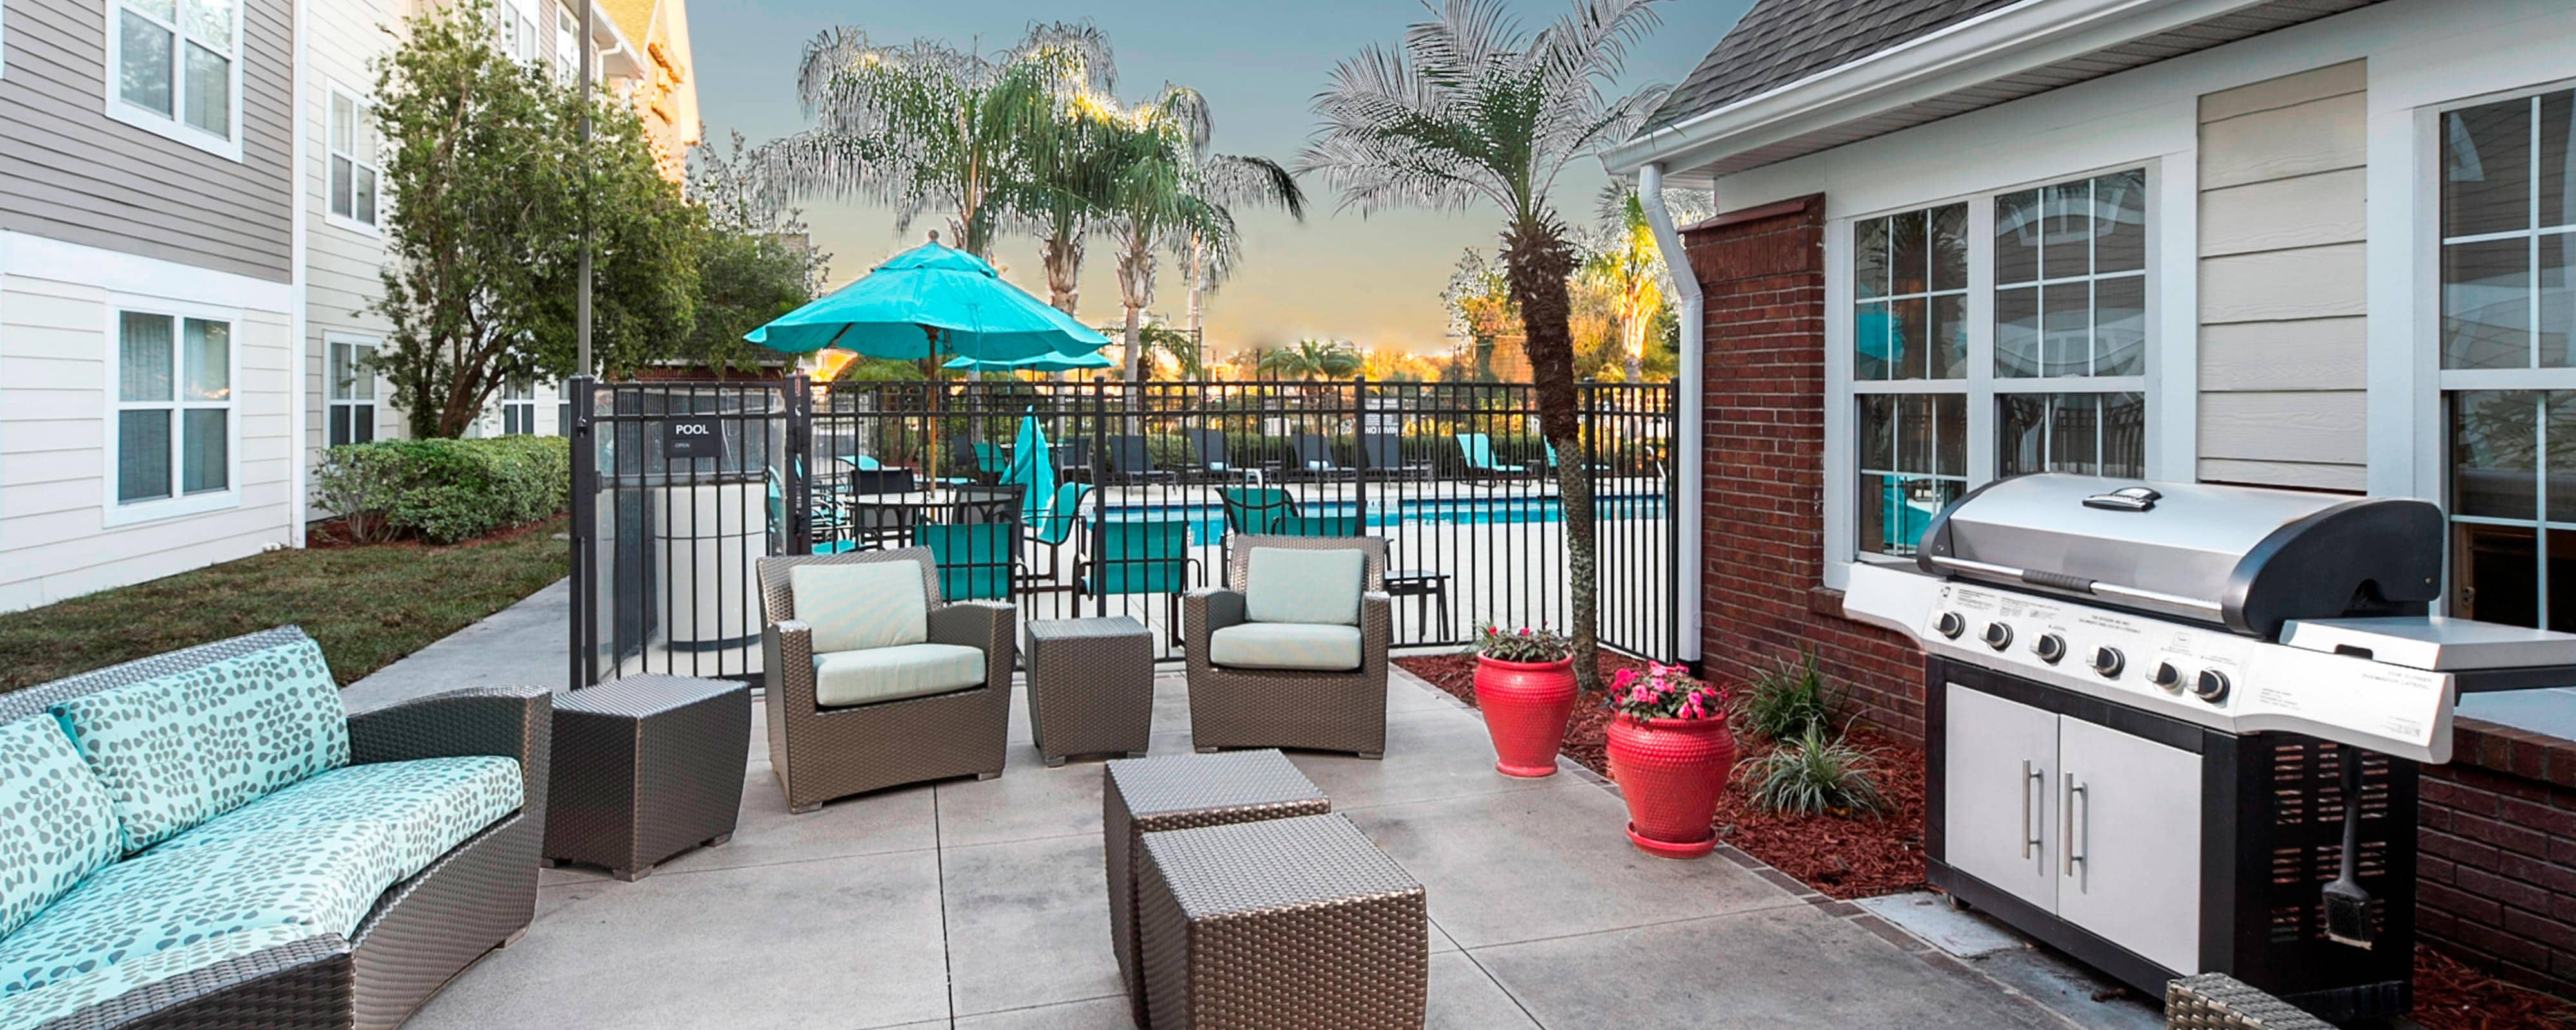 Residence Inn Lakeland social space